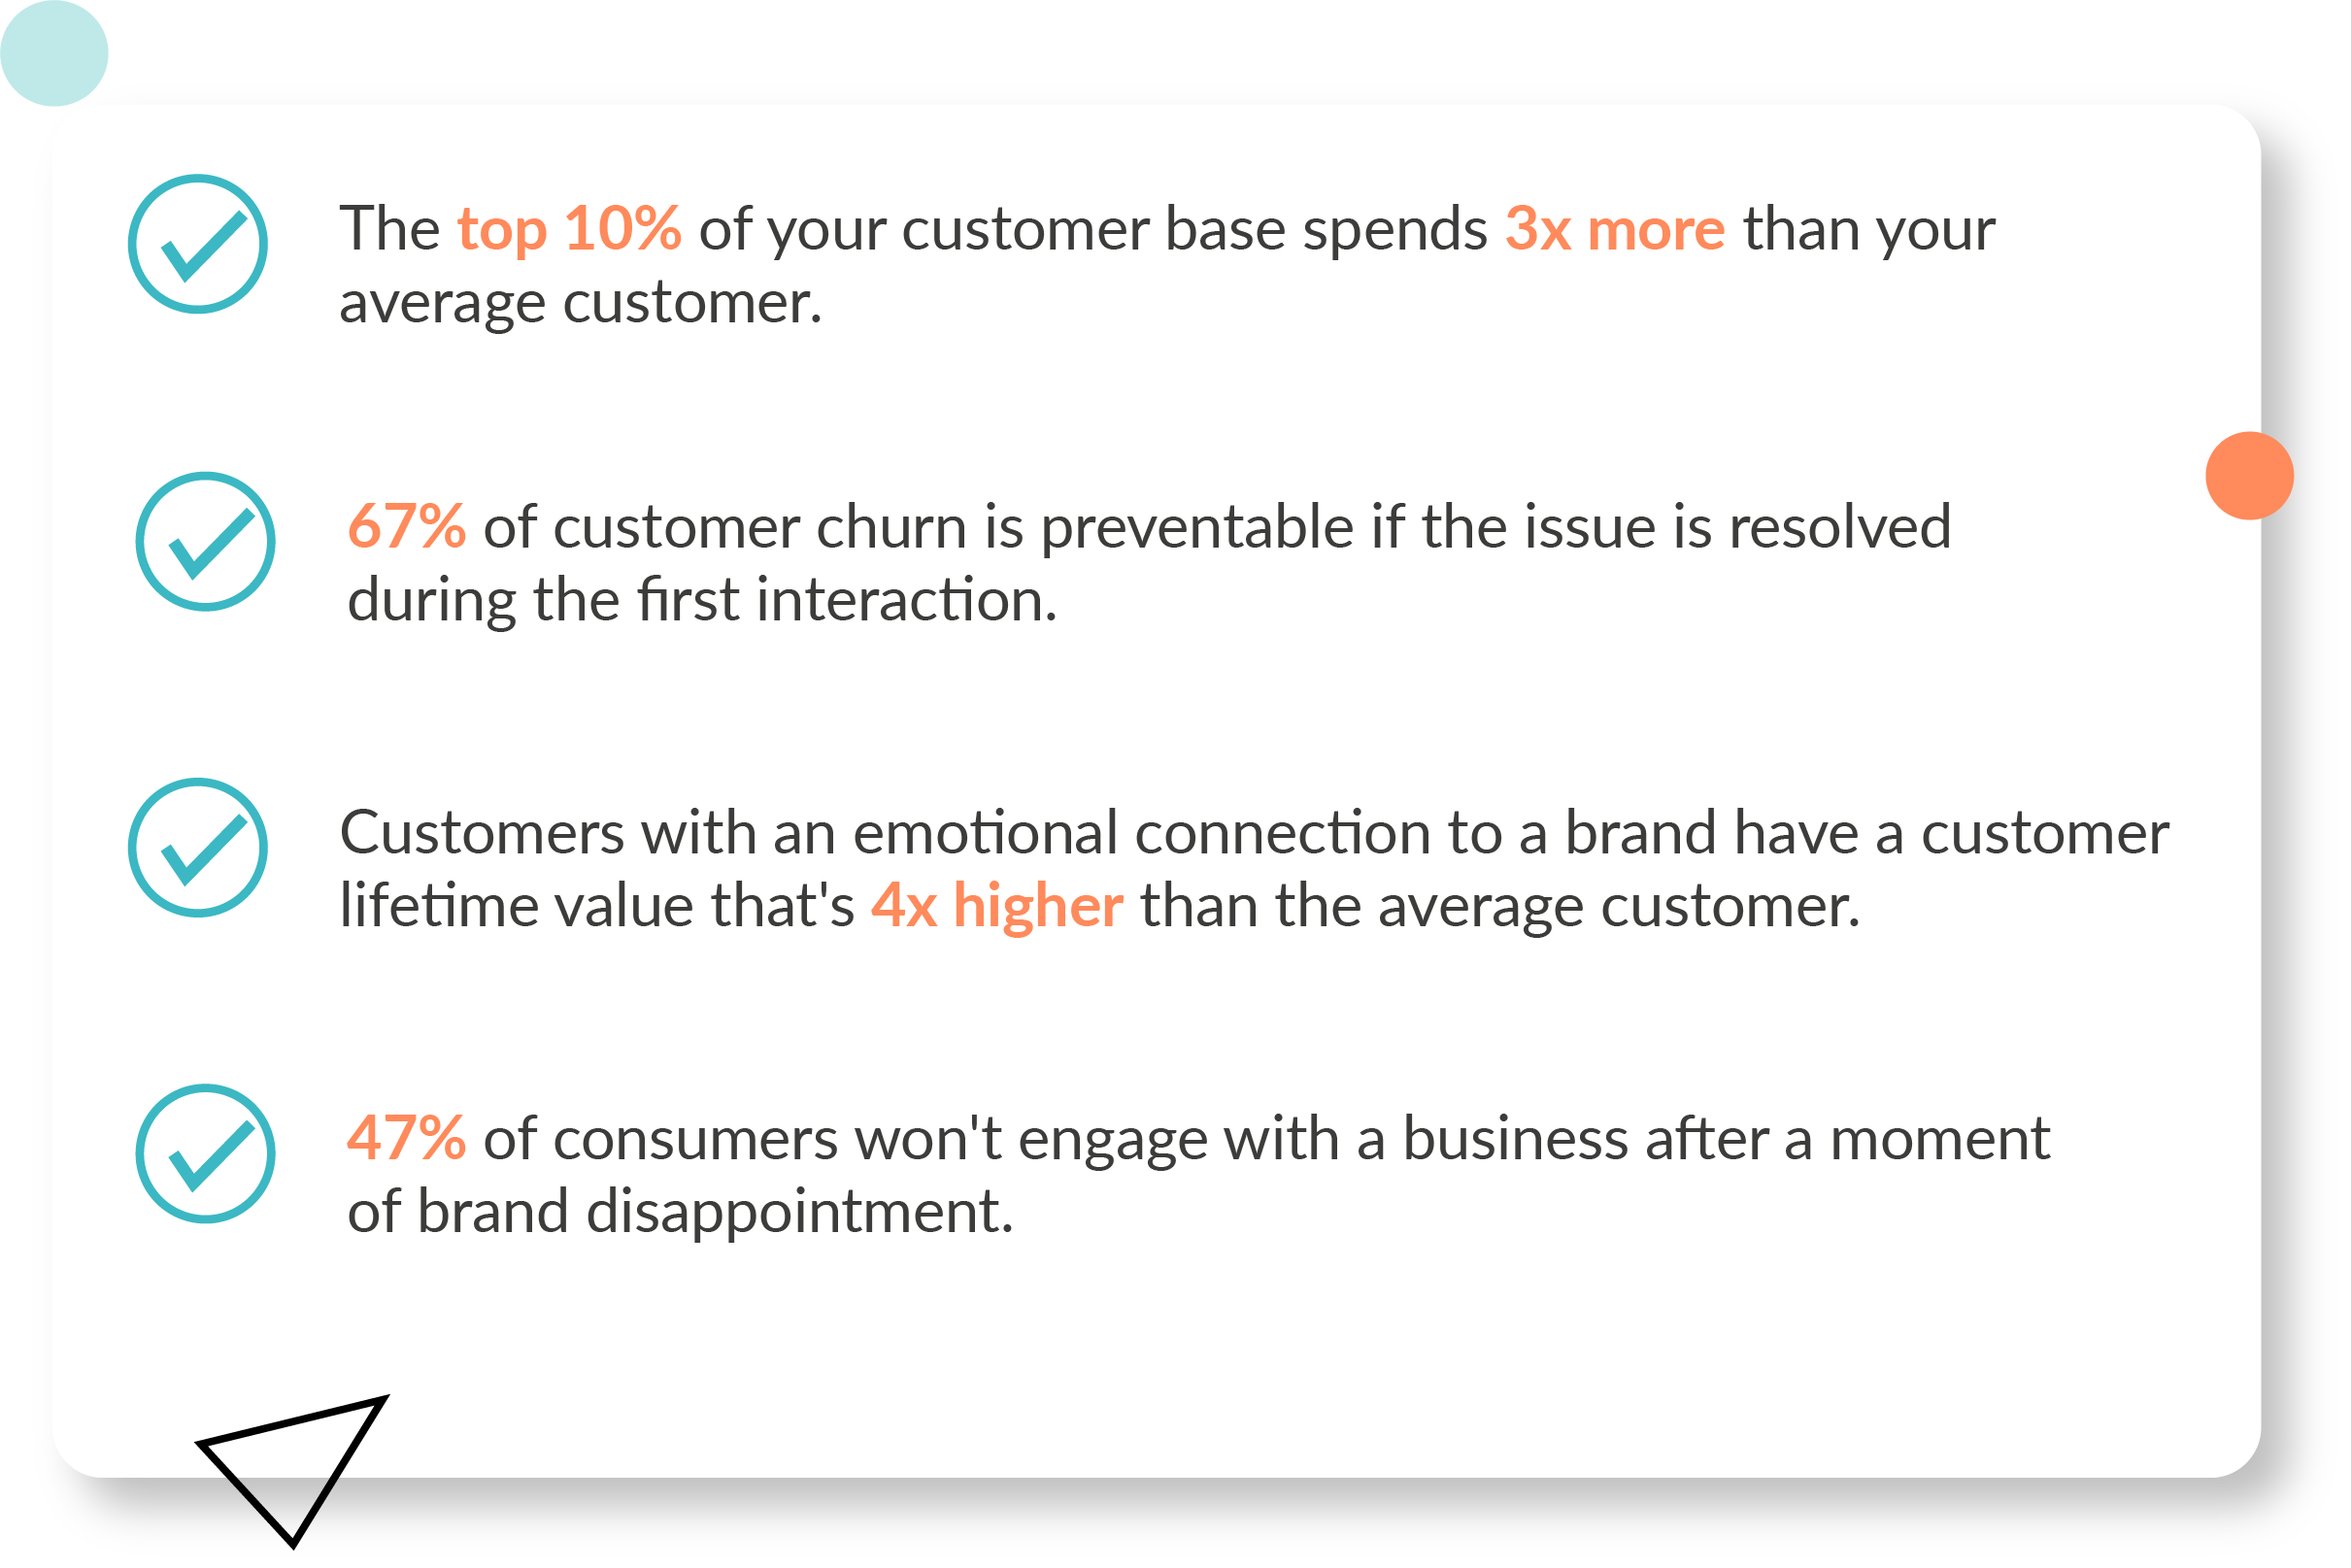 Customer loyalty trends and statistics